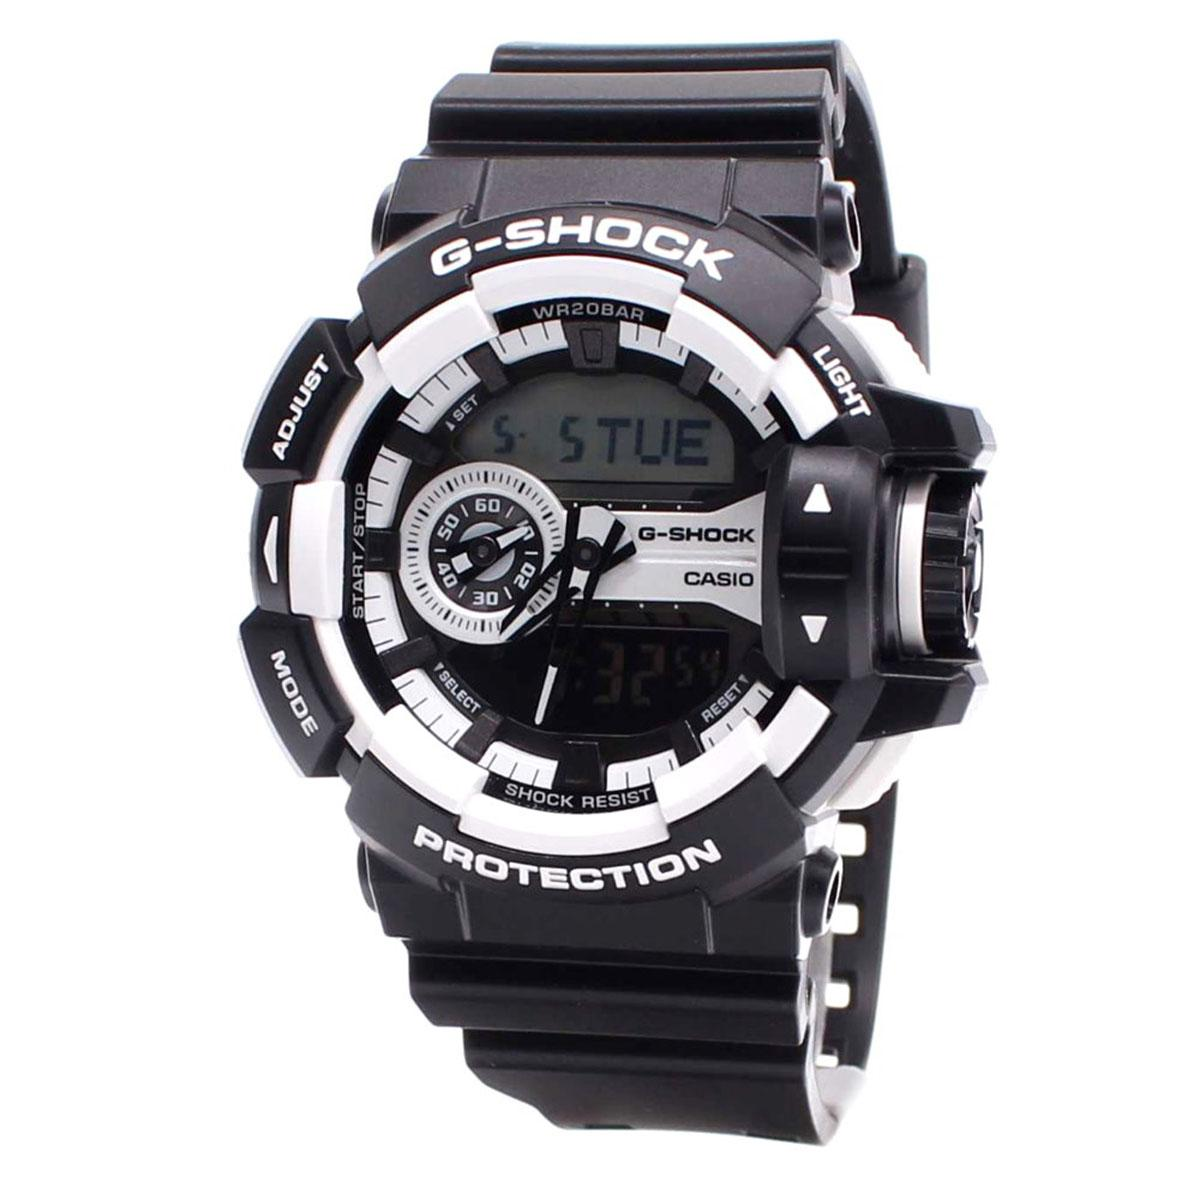 Low Cost Casio Watch G Shock Black Resin Case Resin Strap Mens Ga 400 1A